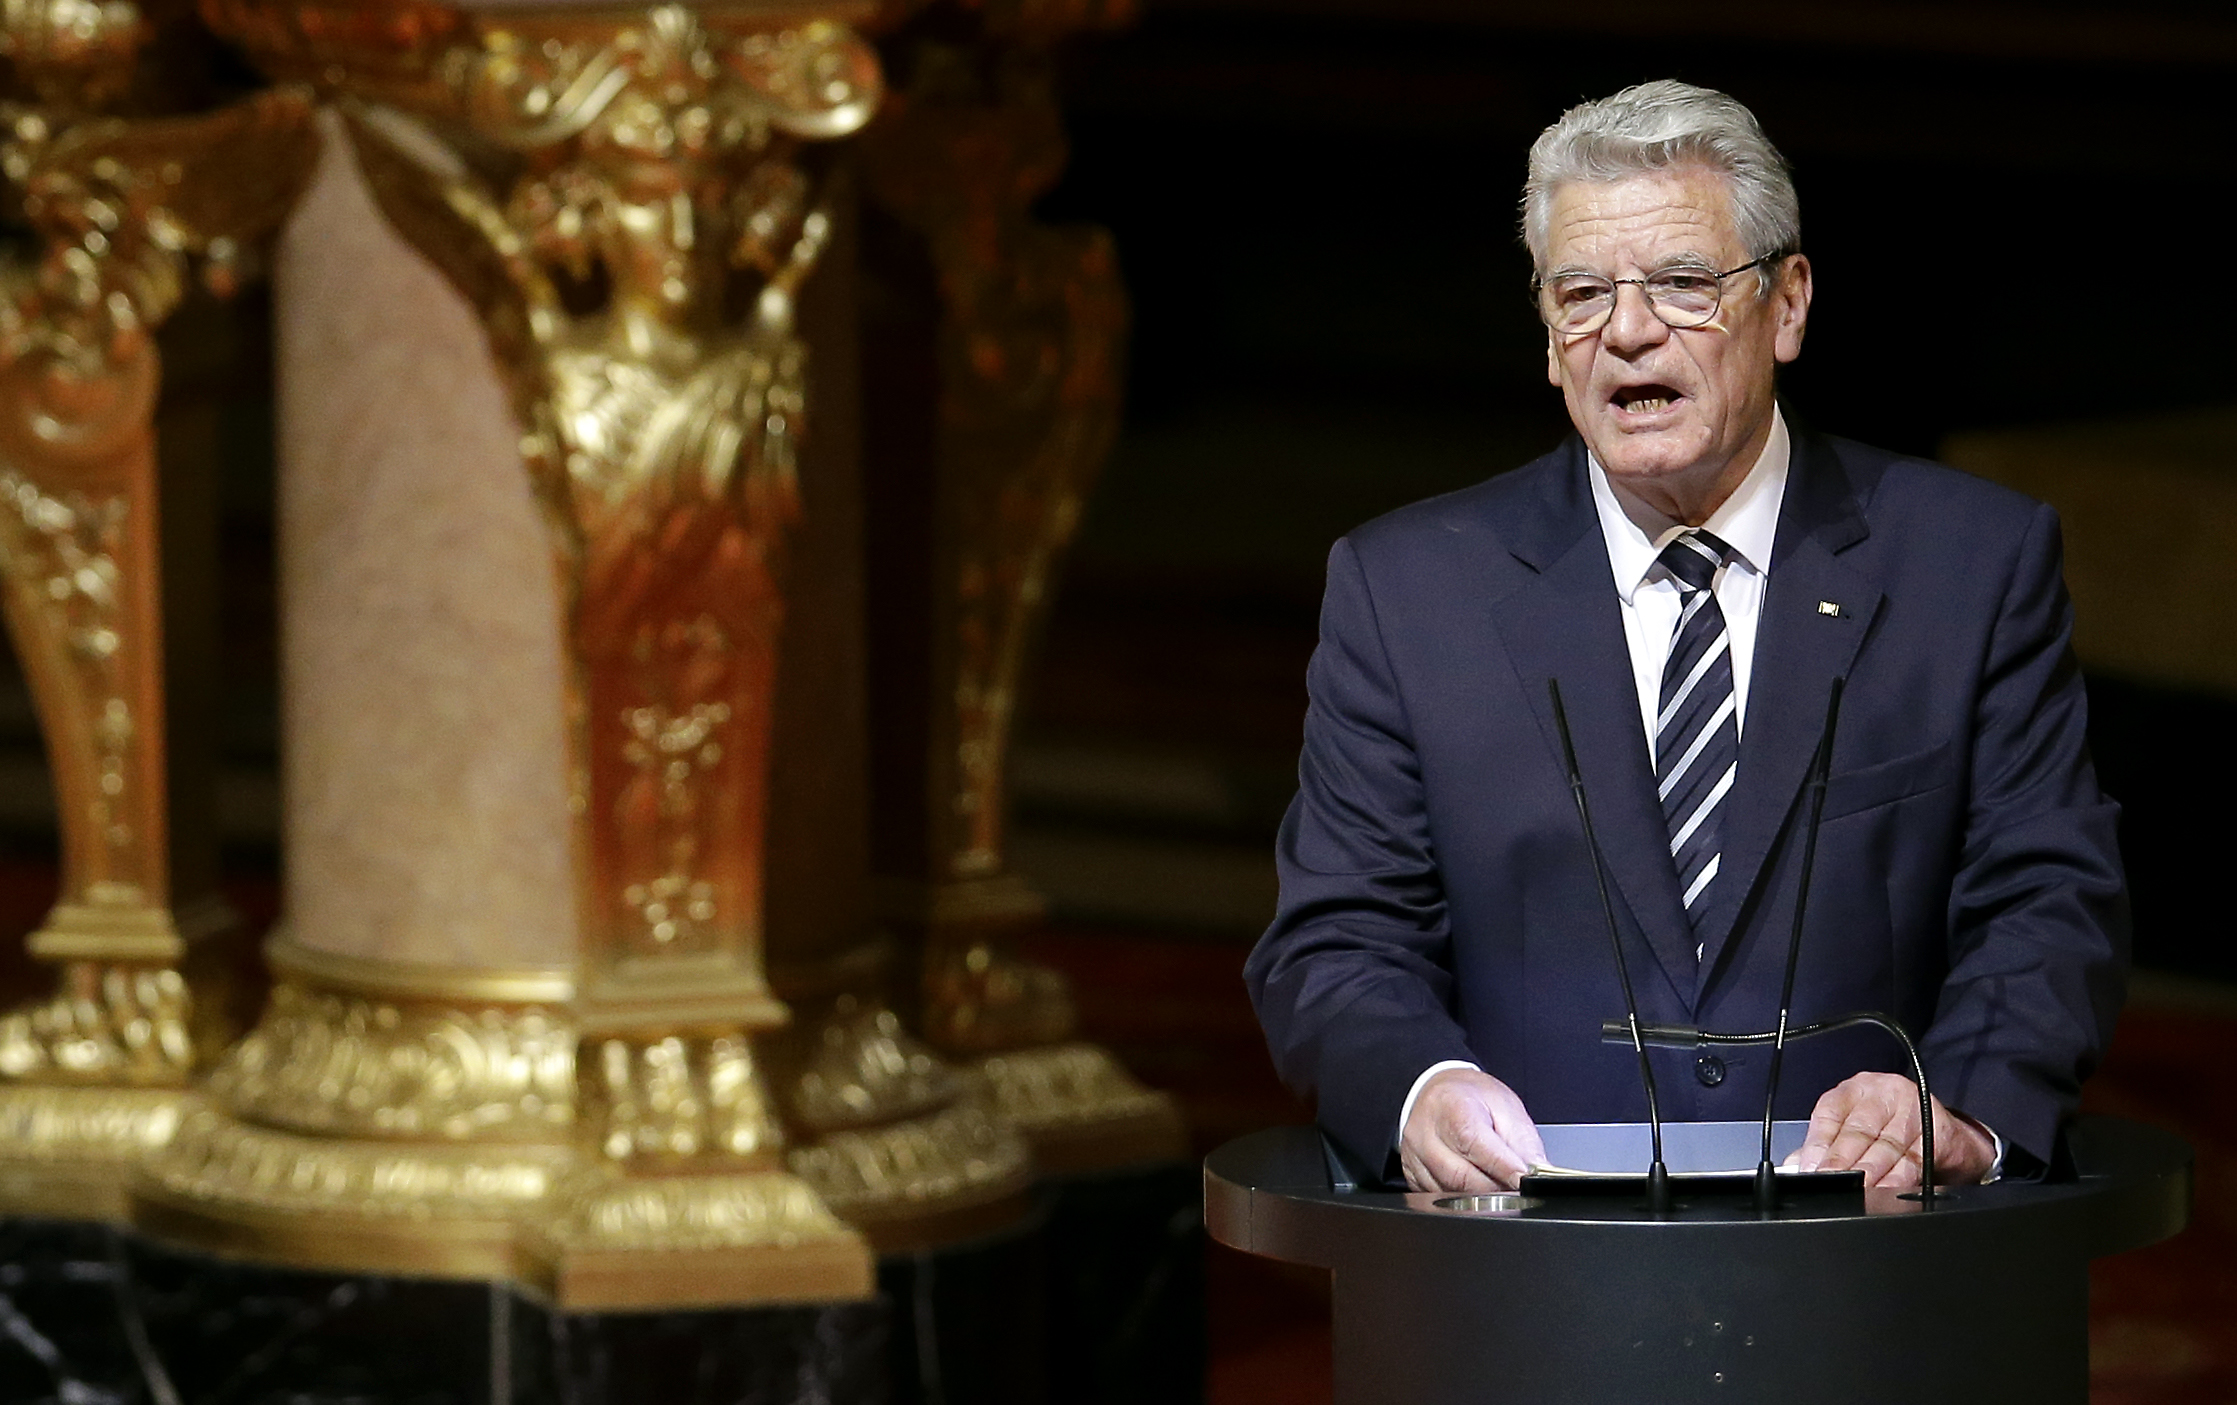 German President Joachim Gauck delivers a speech at the Berlin Cathedral Church in Berlin, Germany, April 23, 2015